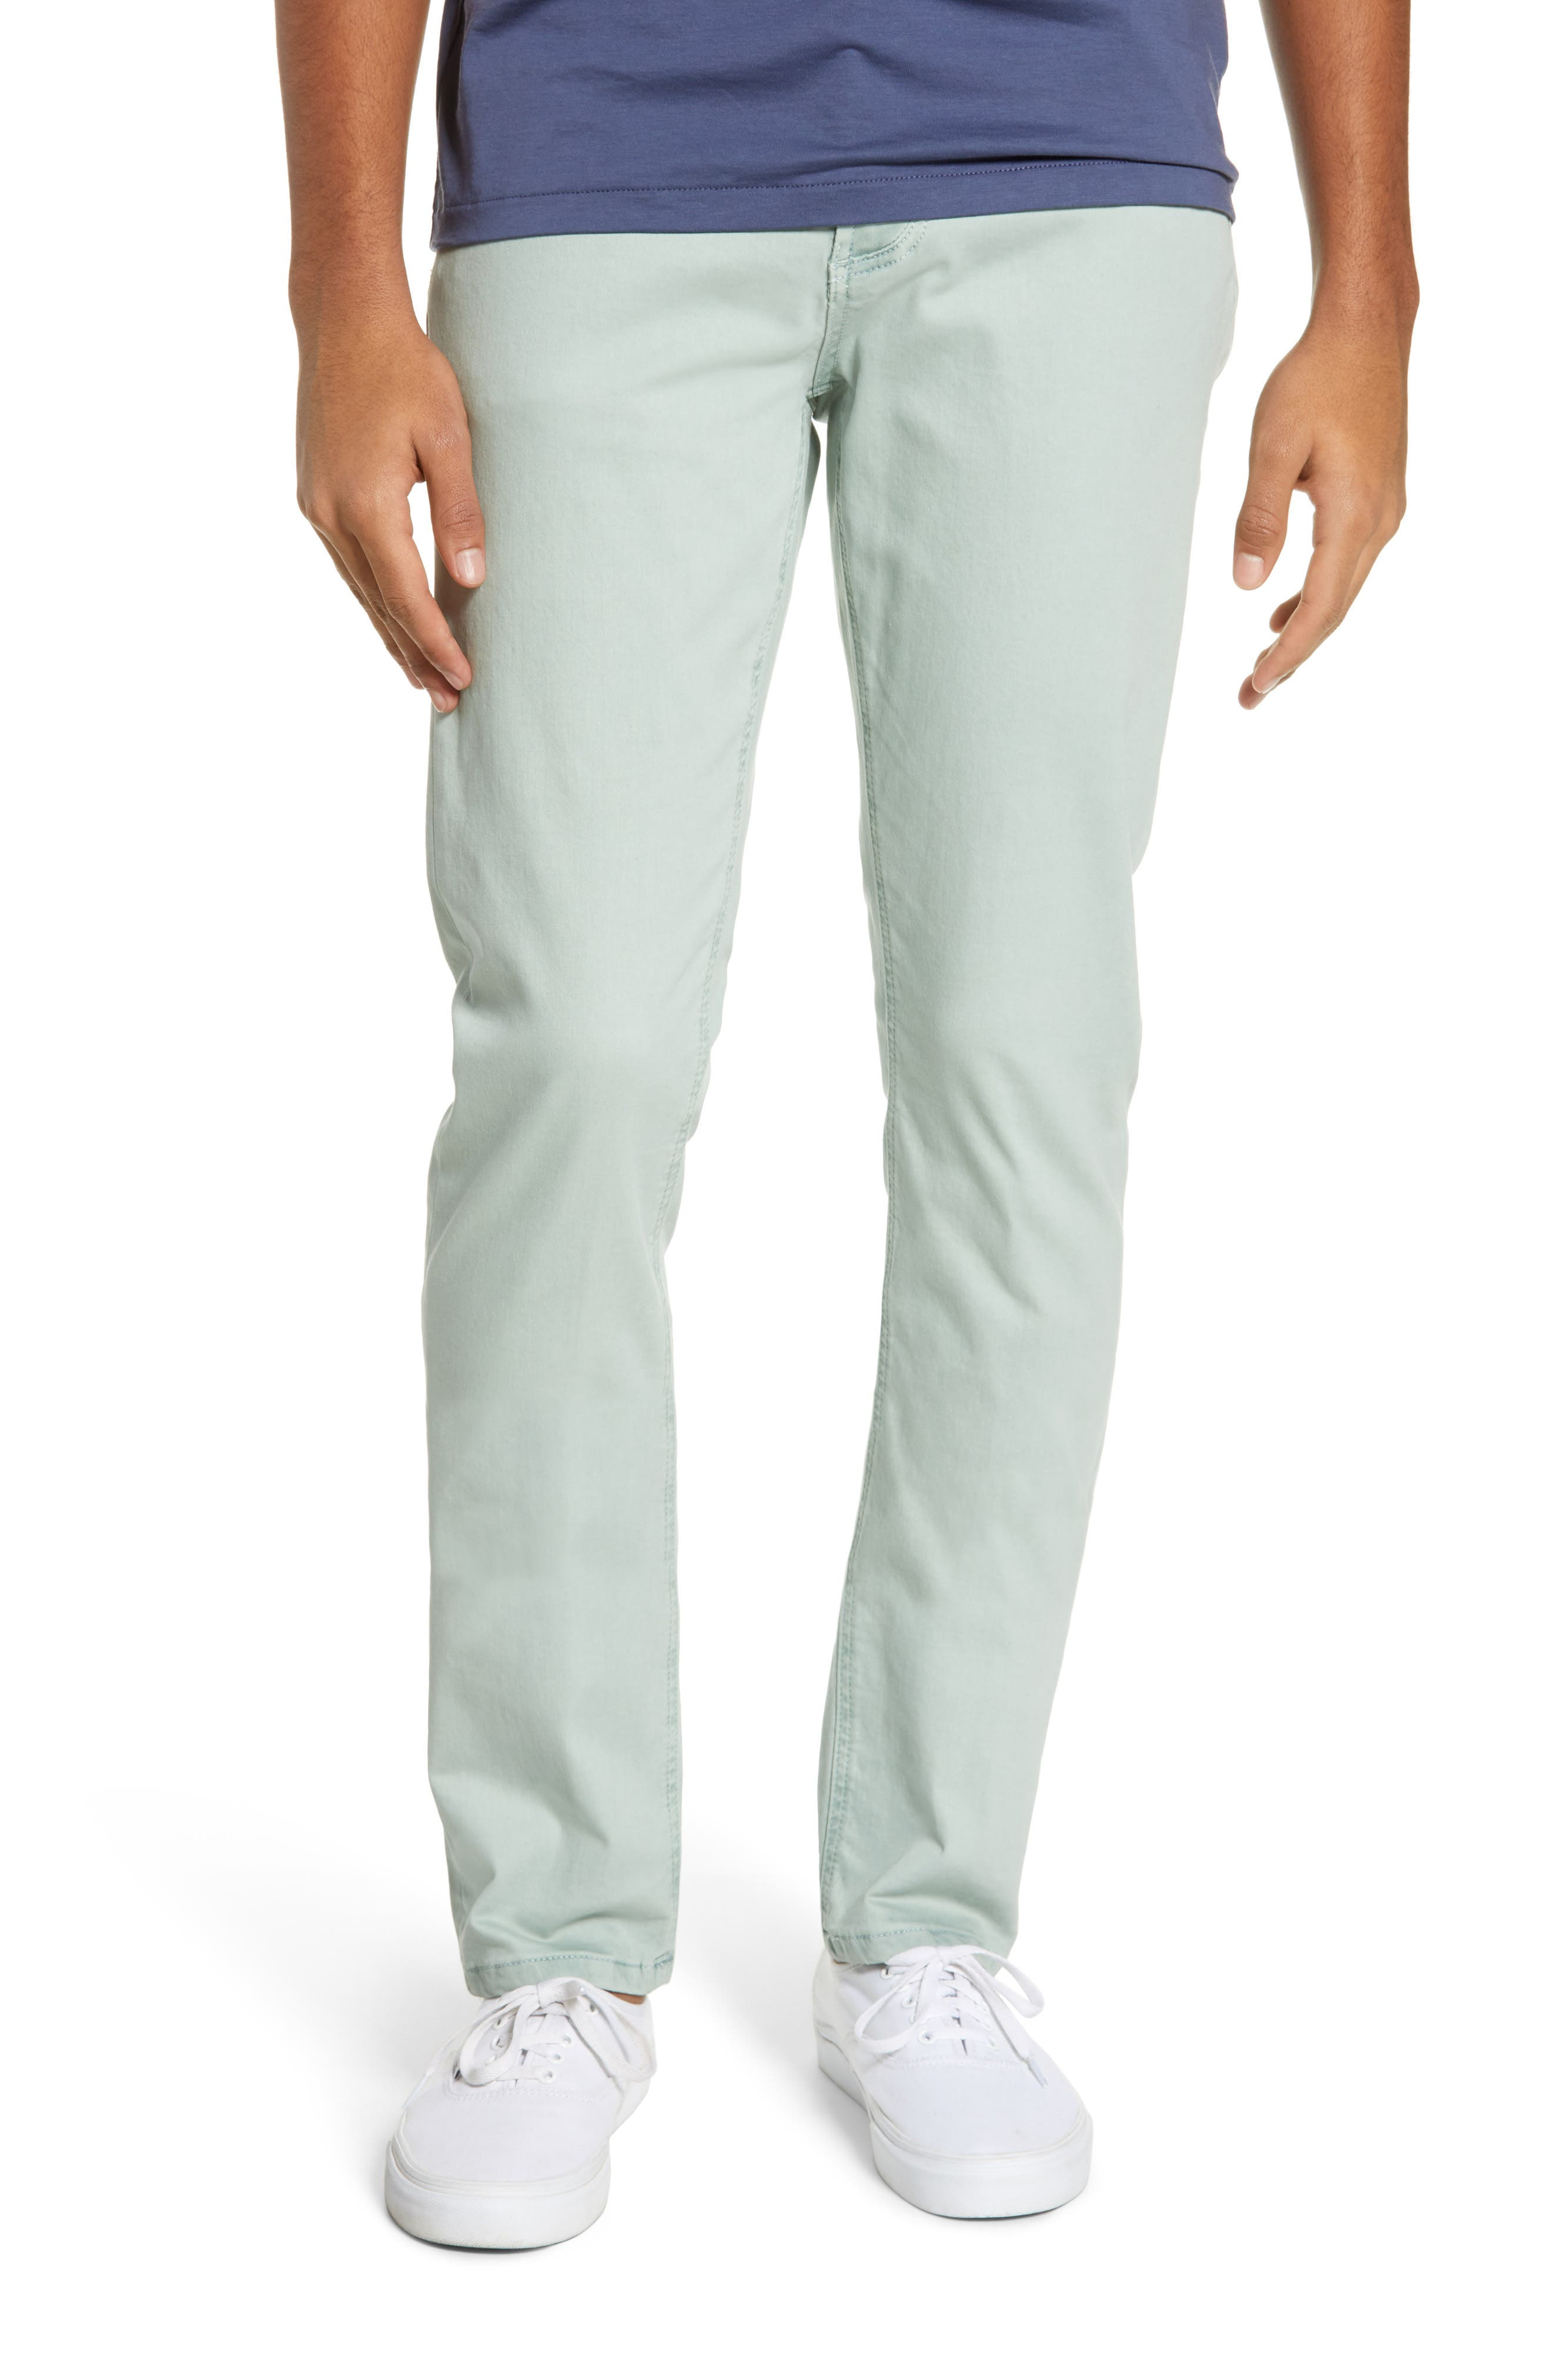 BLANKNYC, Wooster Slim Fit Jeans, Main thumbnail 1, color, PURE DEVOTION